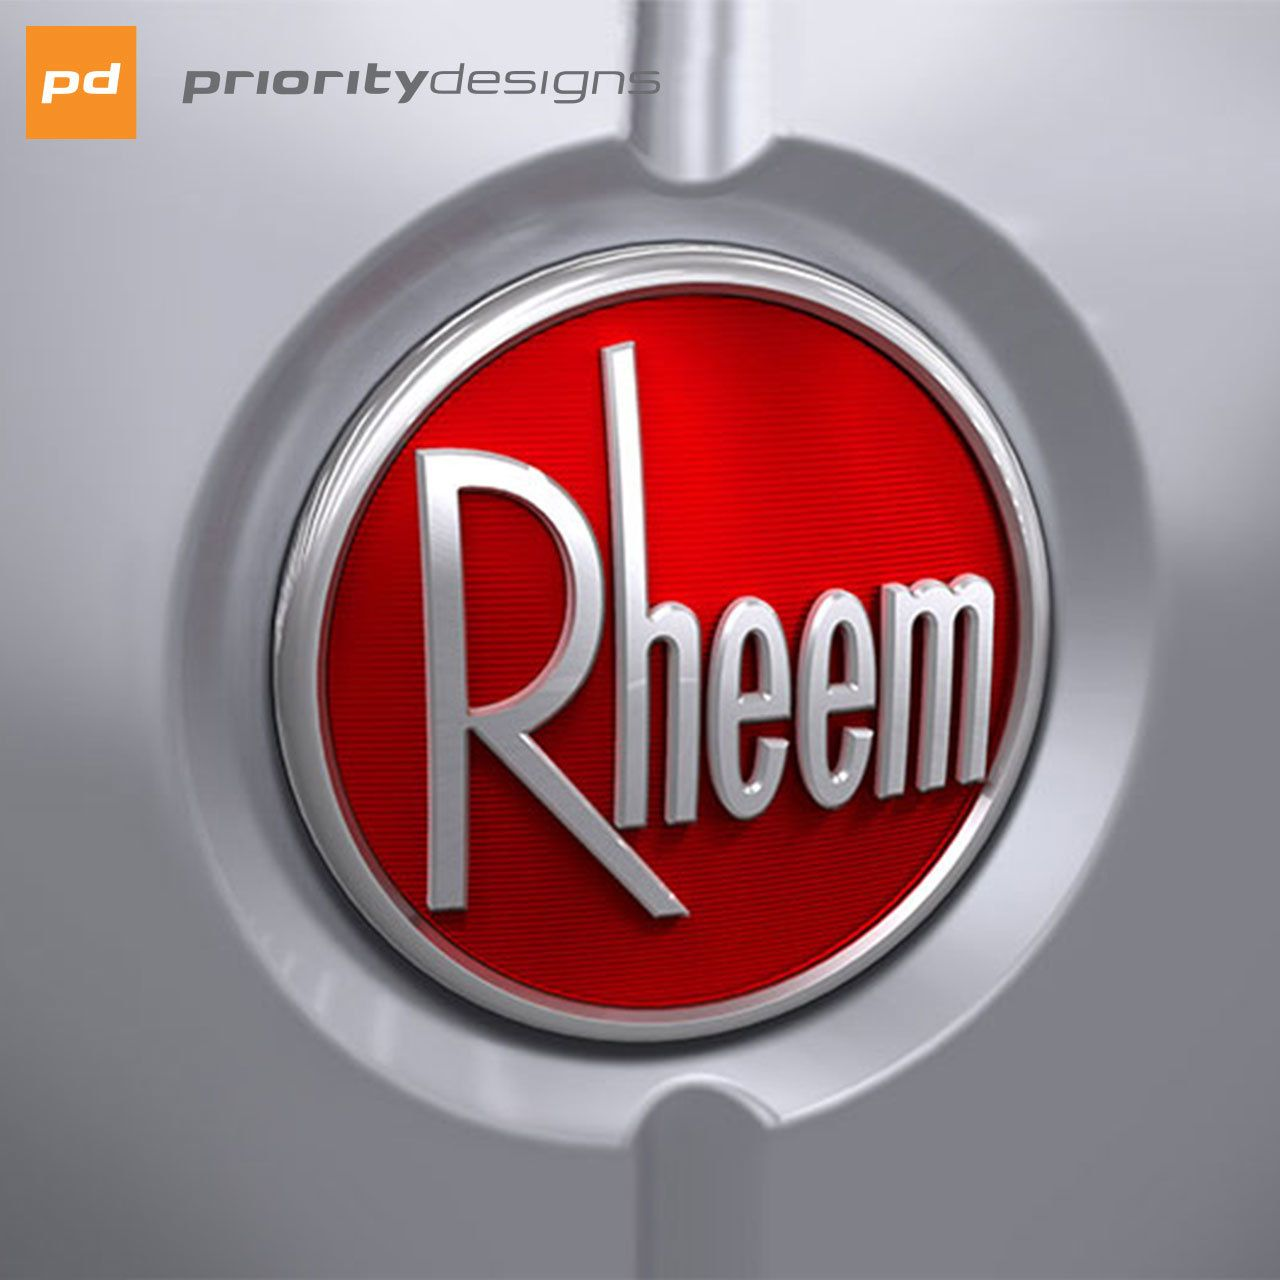 Here S The Badge For The Line We Developed With Rheem Heating And